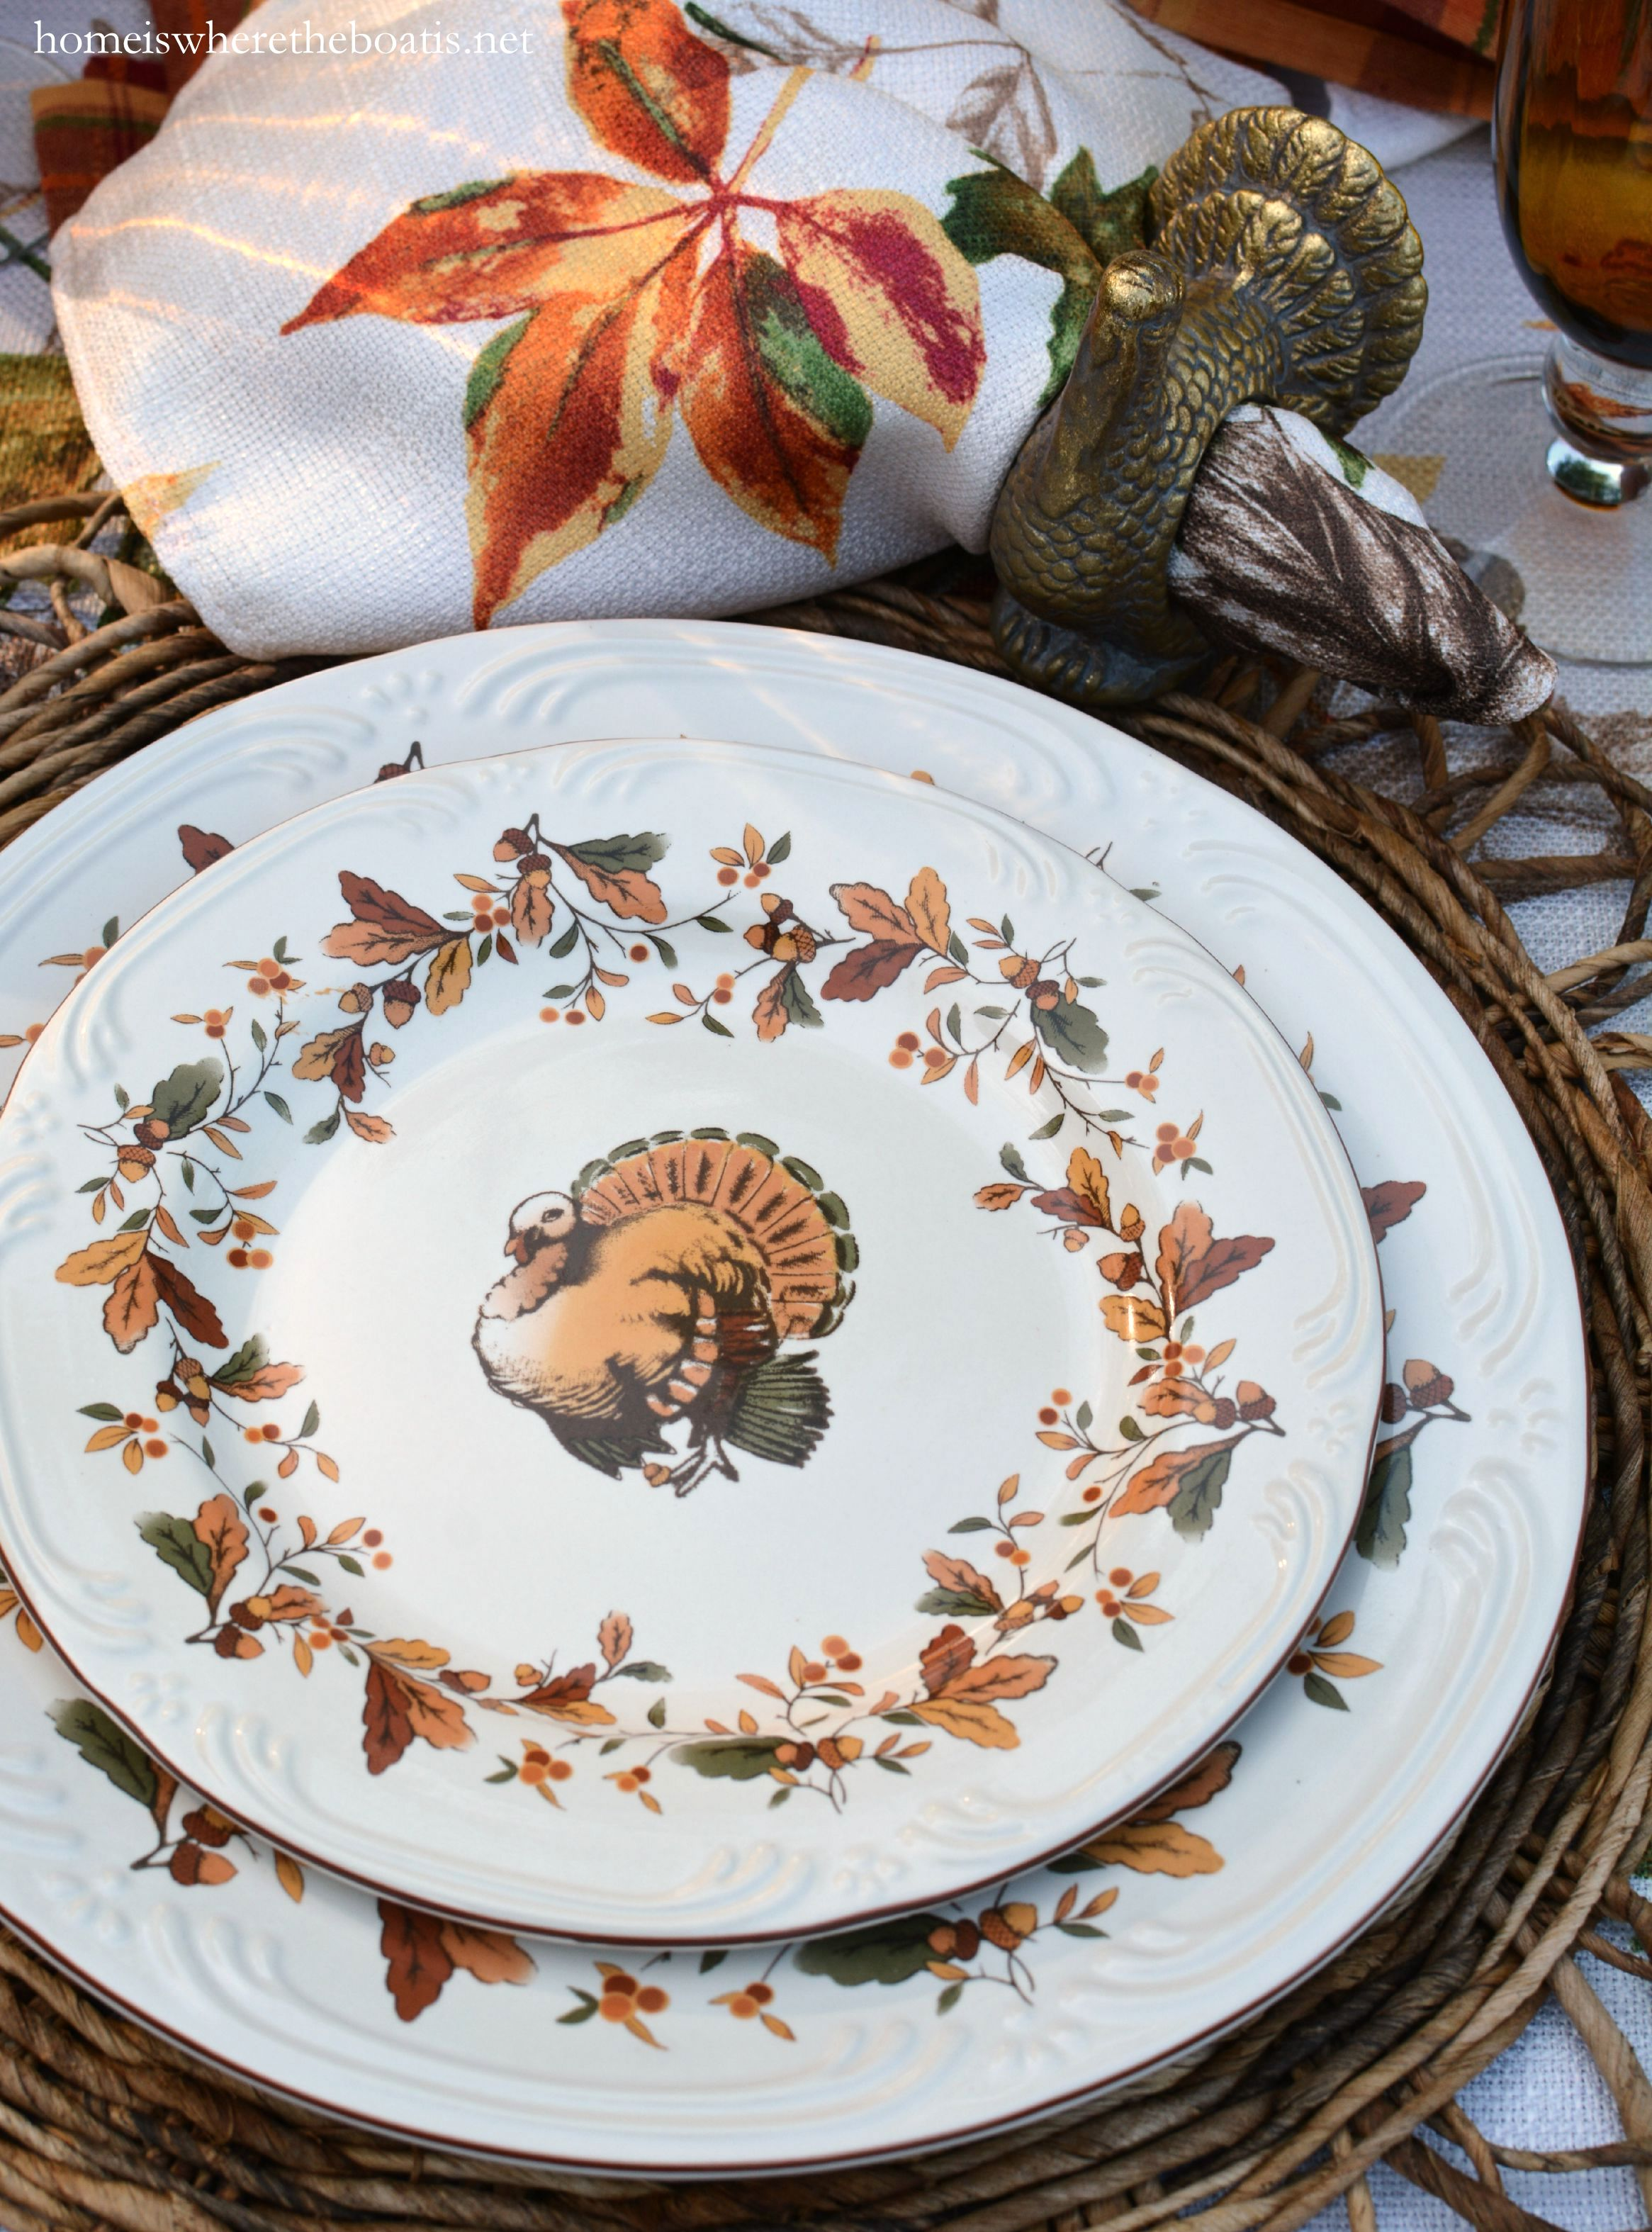 Newly introduced by Pfaltzgraff Autumn Berry dinnerware is bordered by a fall garland of oak leaves acorns and berries. & Scattered Leaves Turkeys and Pfaltzgraff Autumn Berry Dinnerware ...